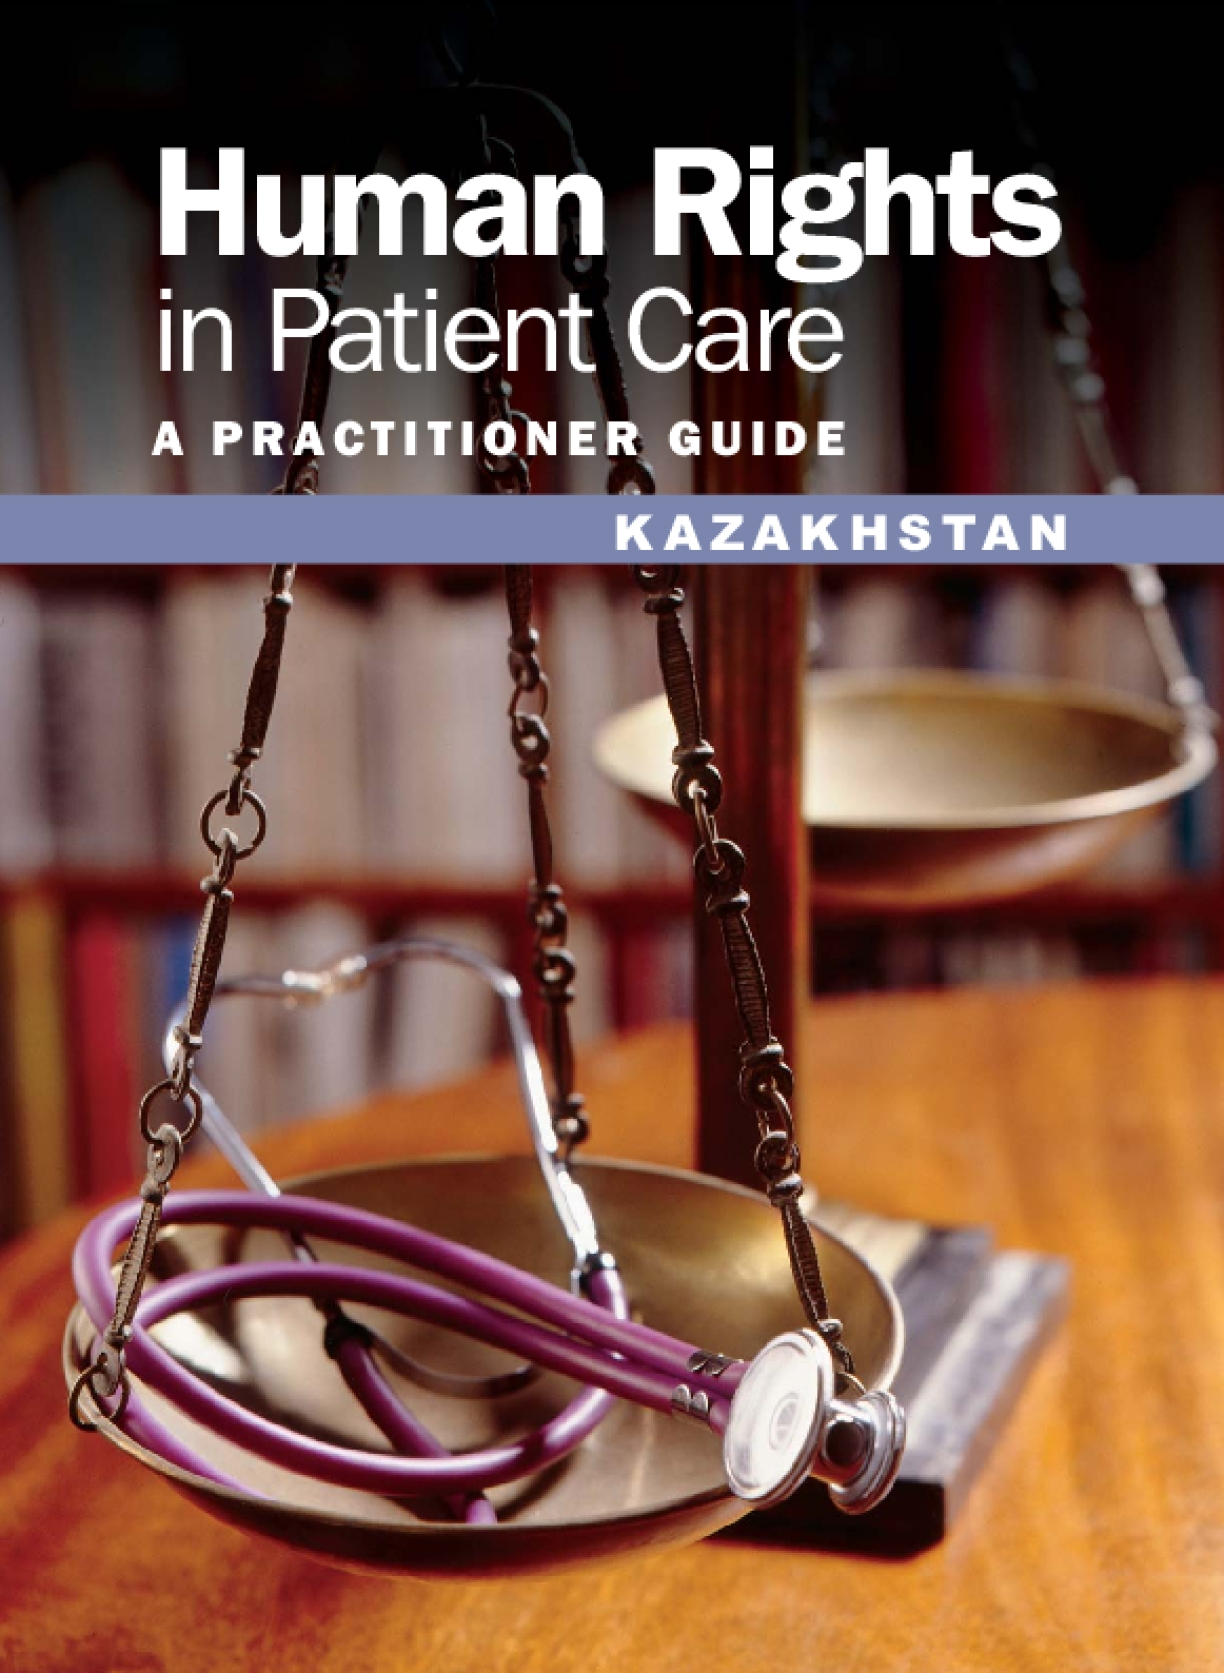 Human Rights in Patient Care: A Practitioner Guide - Kazakhstan